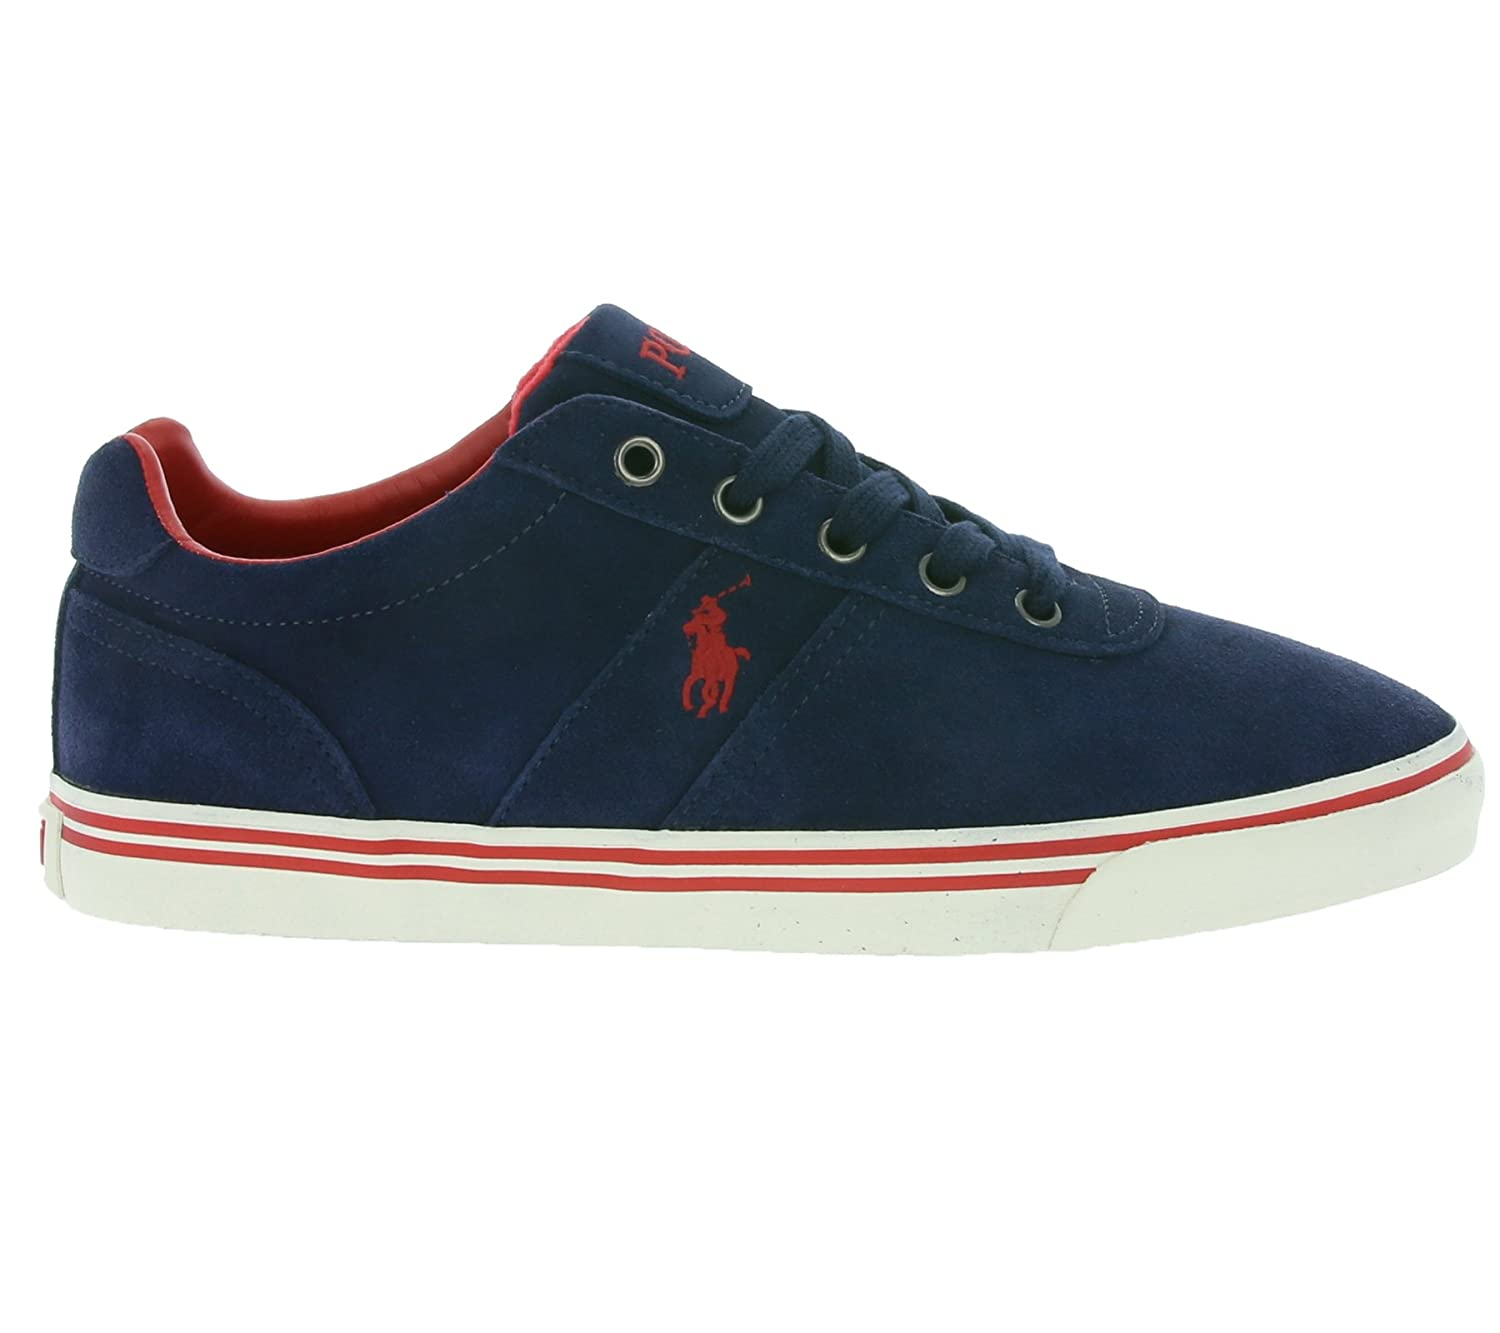 Polo Ralph Lauren Hanford Men s Real Leather Sneaker Blue A85 XZ4YQ XY4YQ  XW4R7  Amazon.co.uk  Shoes   Bags 8aeda24e043